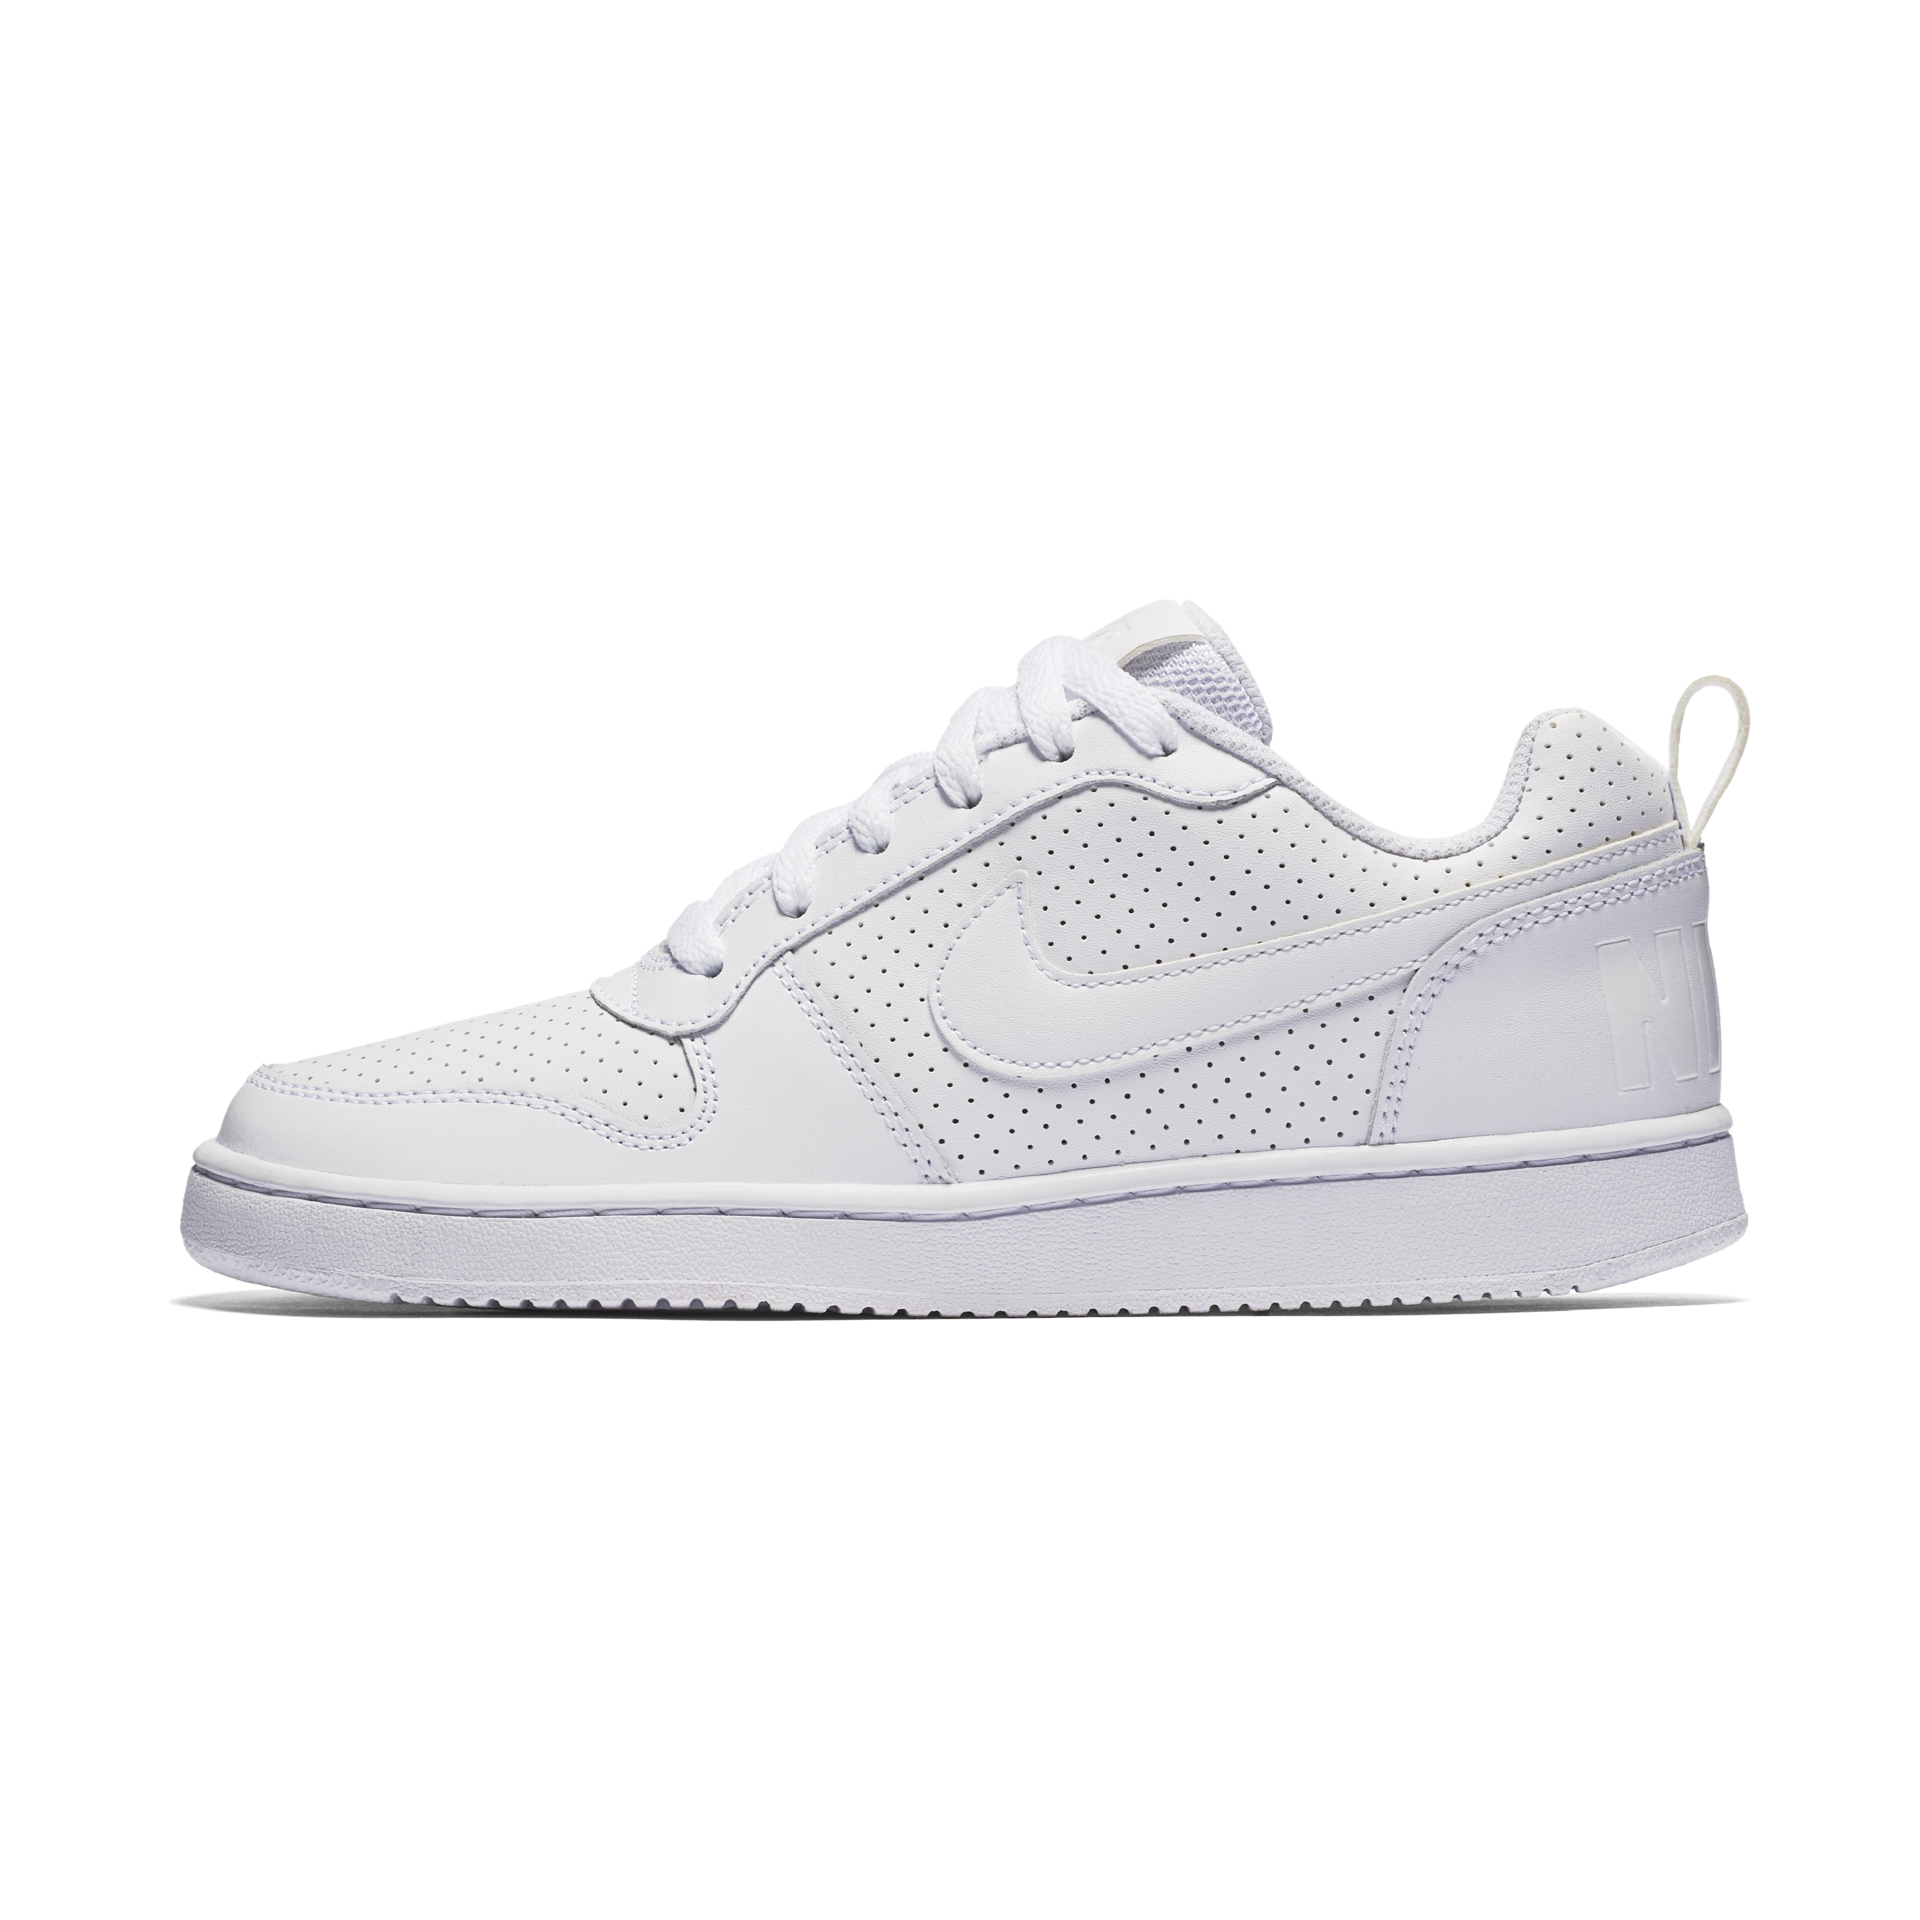 NIKE COURT BOROUGH LOW LADIES , Poobie Naidoos